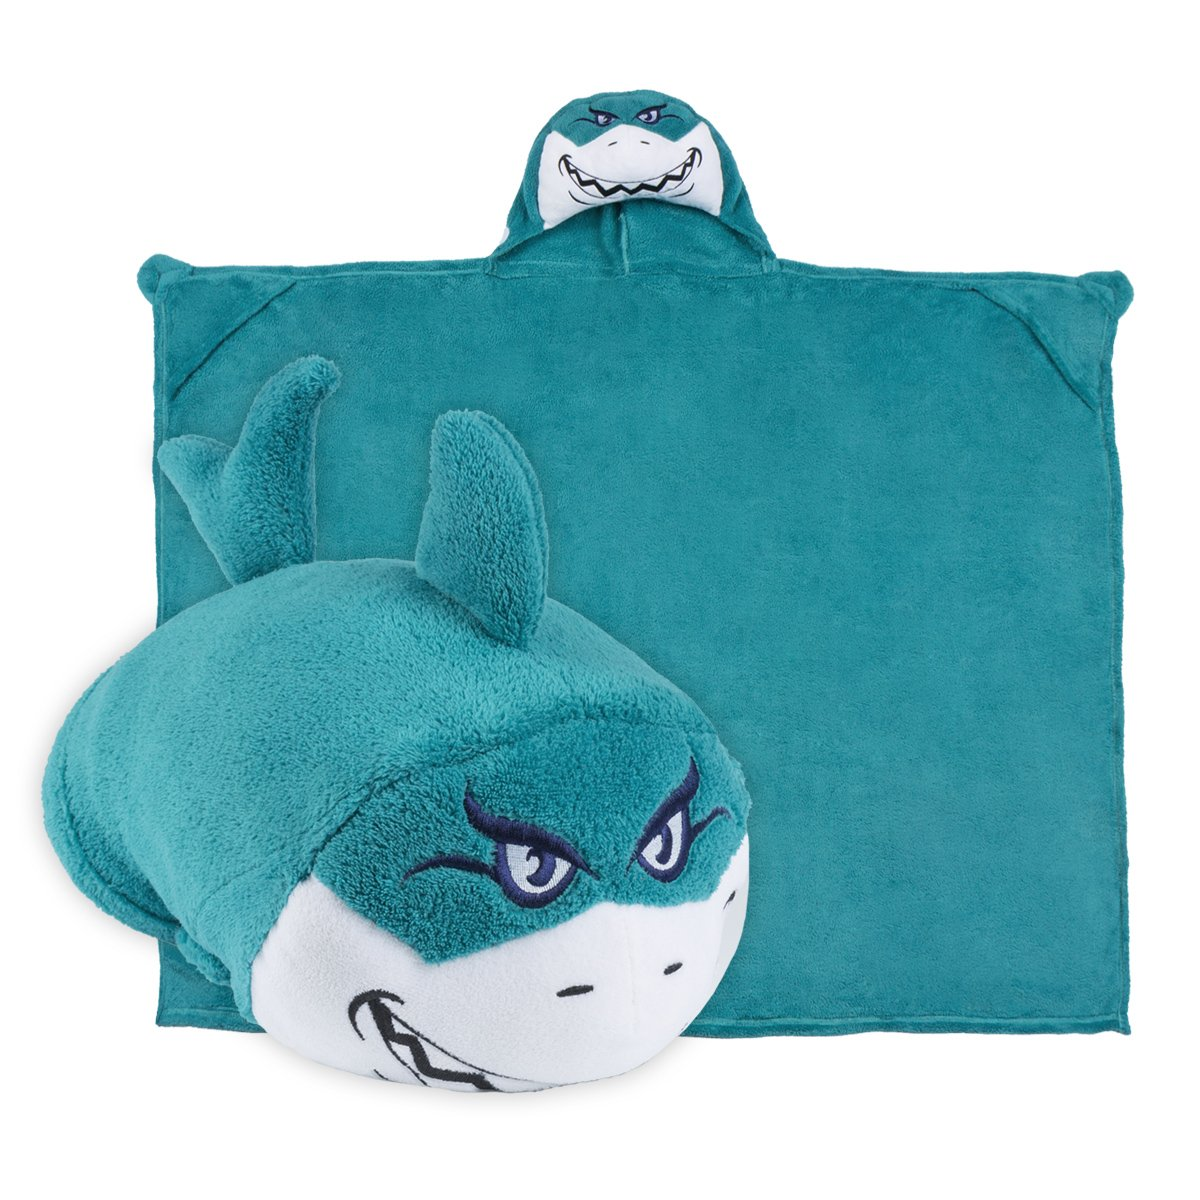 Comfy Critters Stuffed Animal Blanket - Shark - Kids Huggable Pillow and Blanket Perfect for Pretend Play, Travel, nap time.